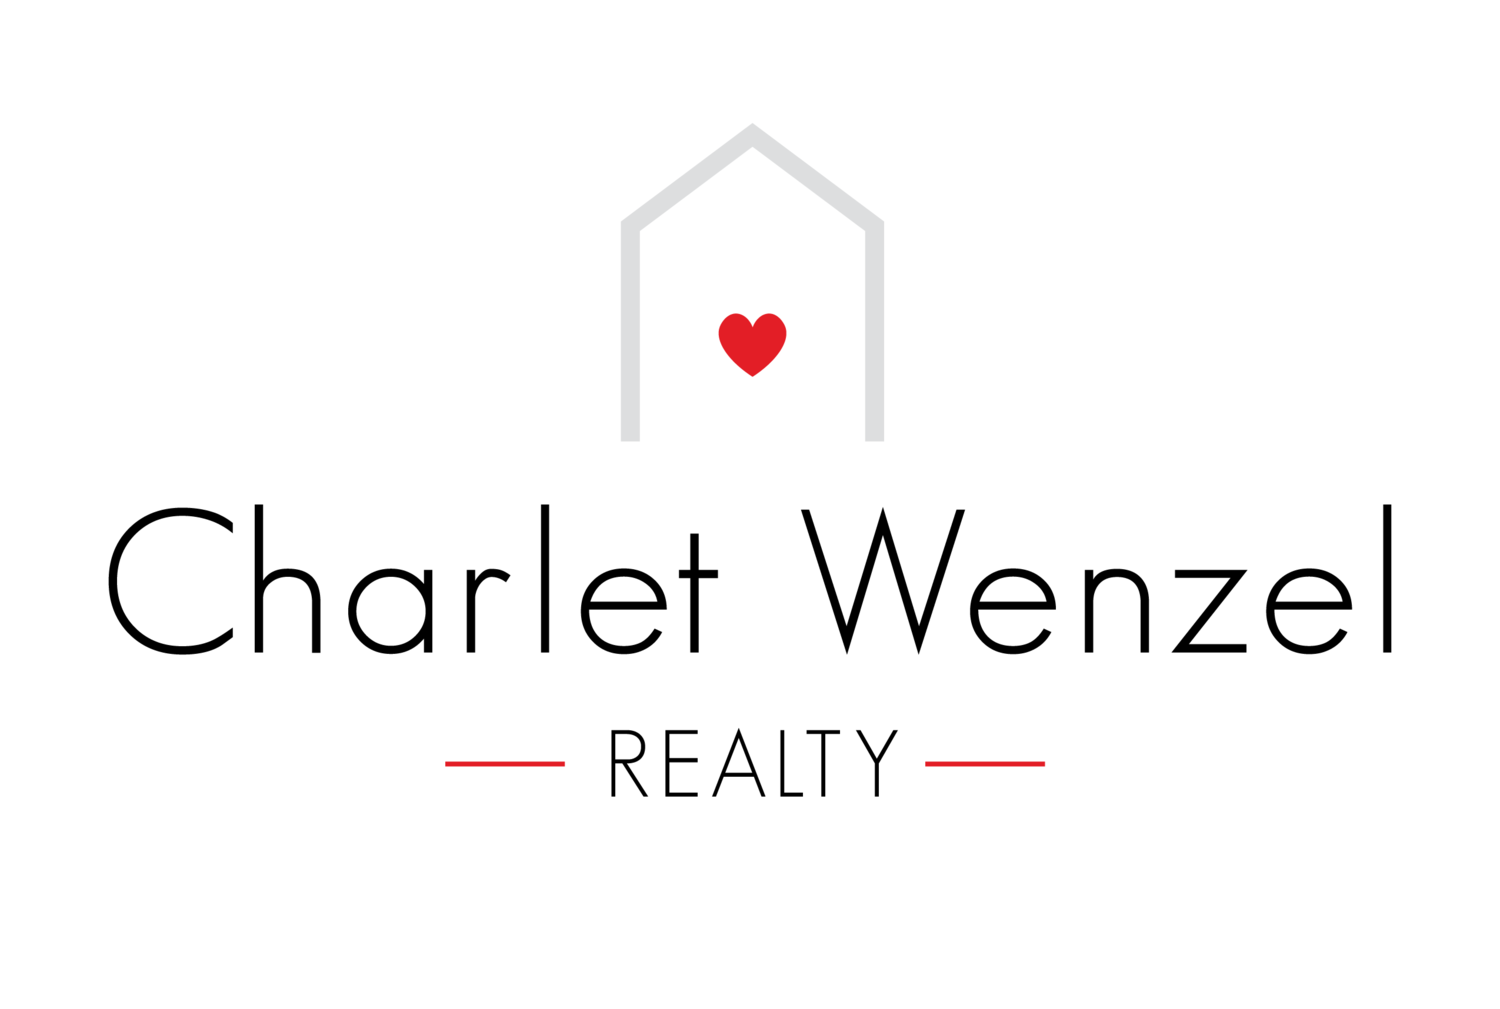 Charlet Wenzel Realty